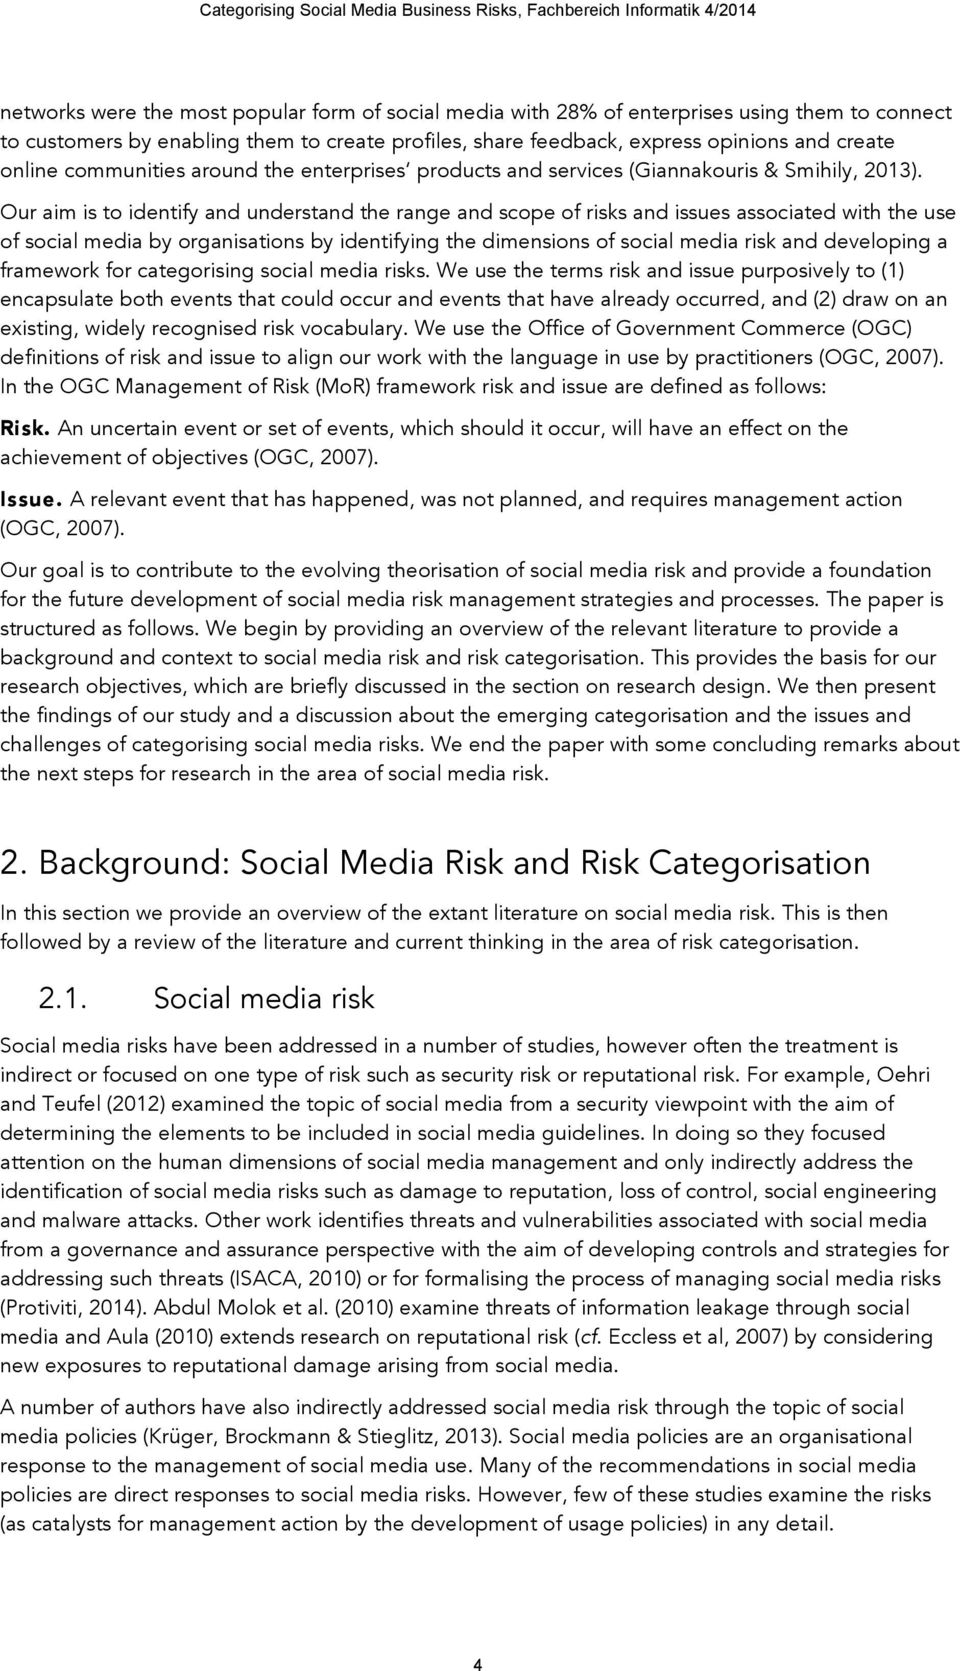 Our aim is to identify and understand the range and scope of risks and issues associated with the use of social media by organisations by identifying the dimensions of social media risk and